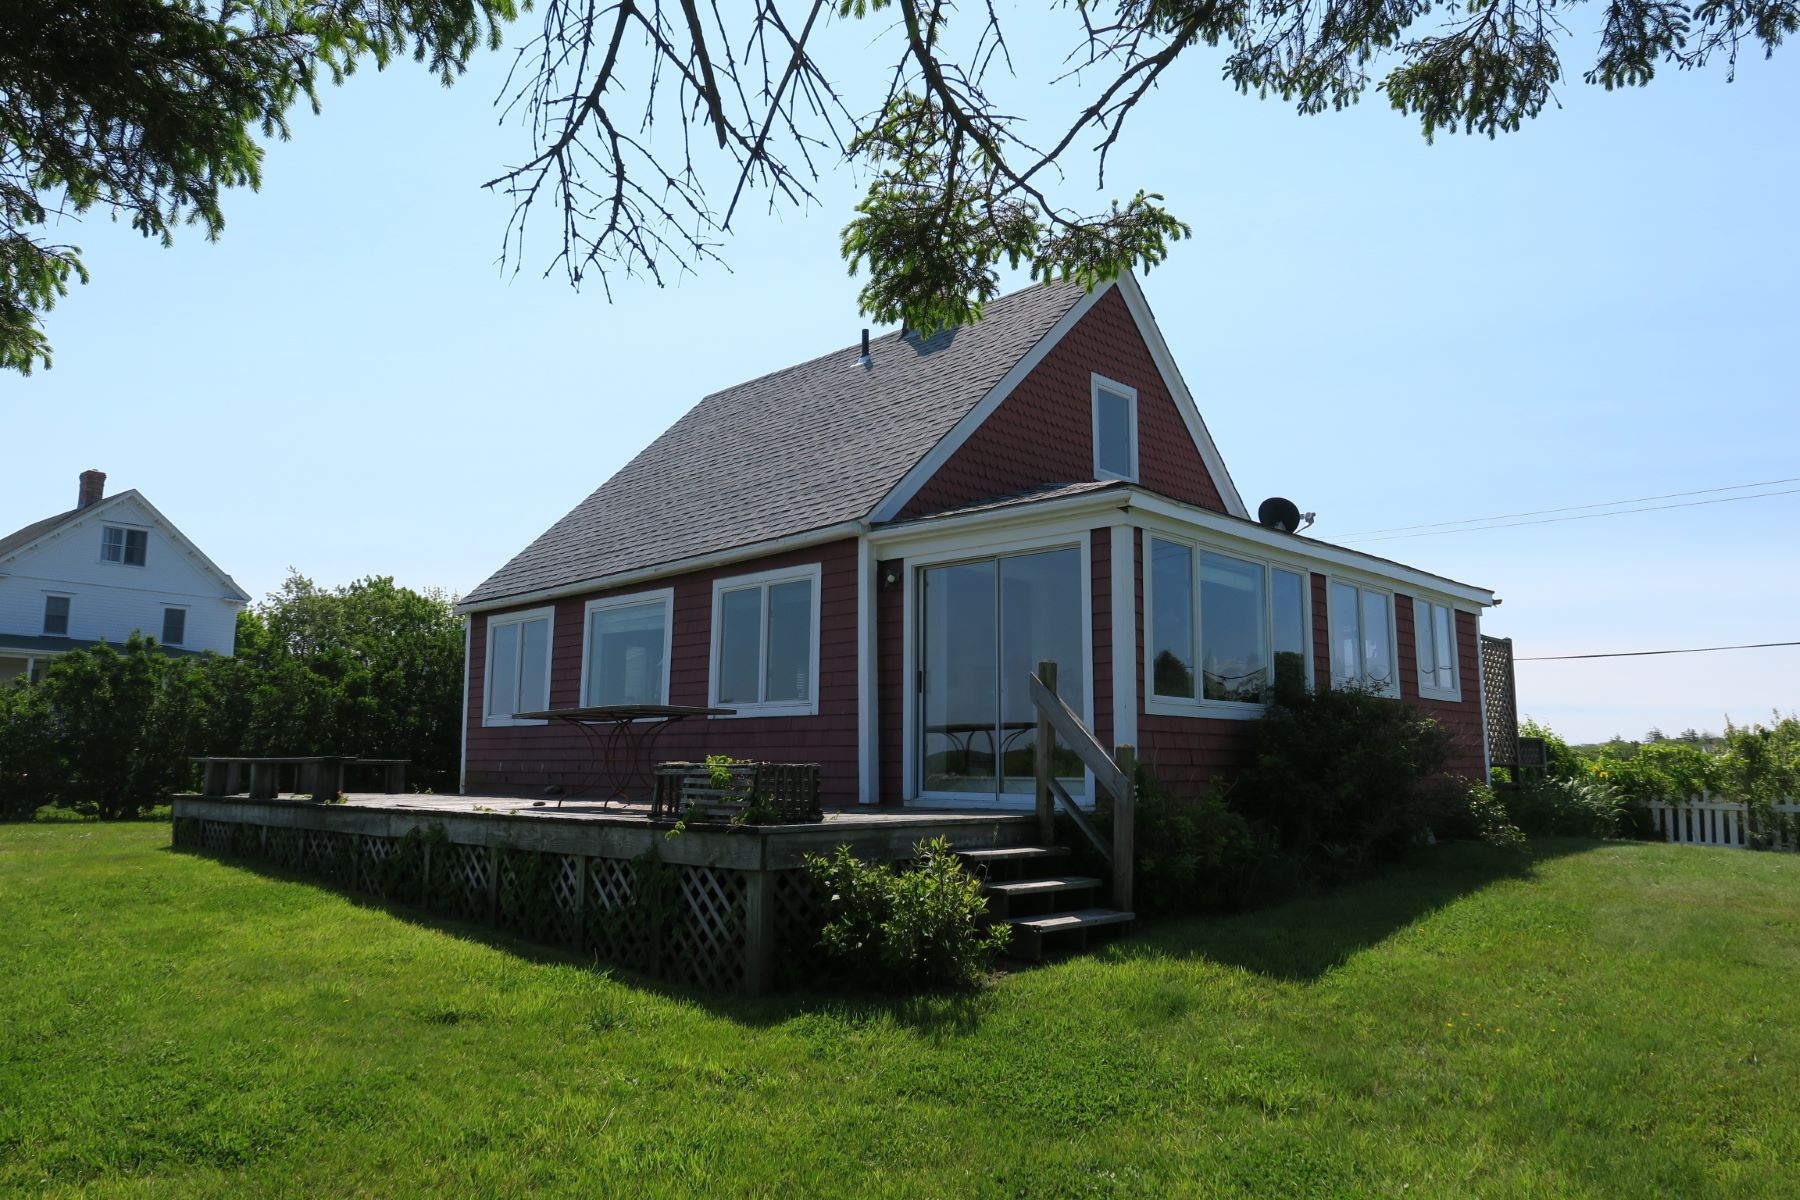 Single Family Homes for Sale at 838 Center Road Block Island, Rhode Island 02807 United States